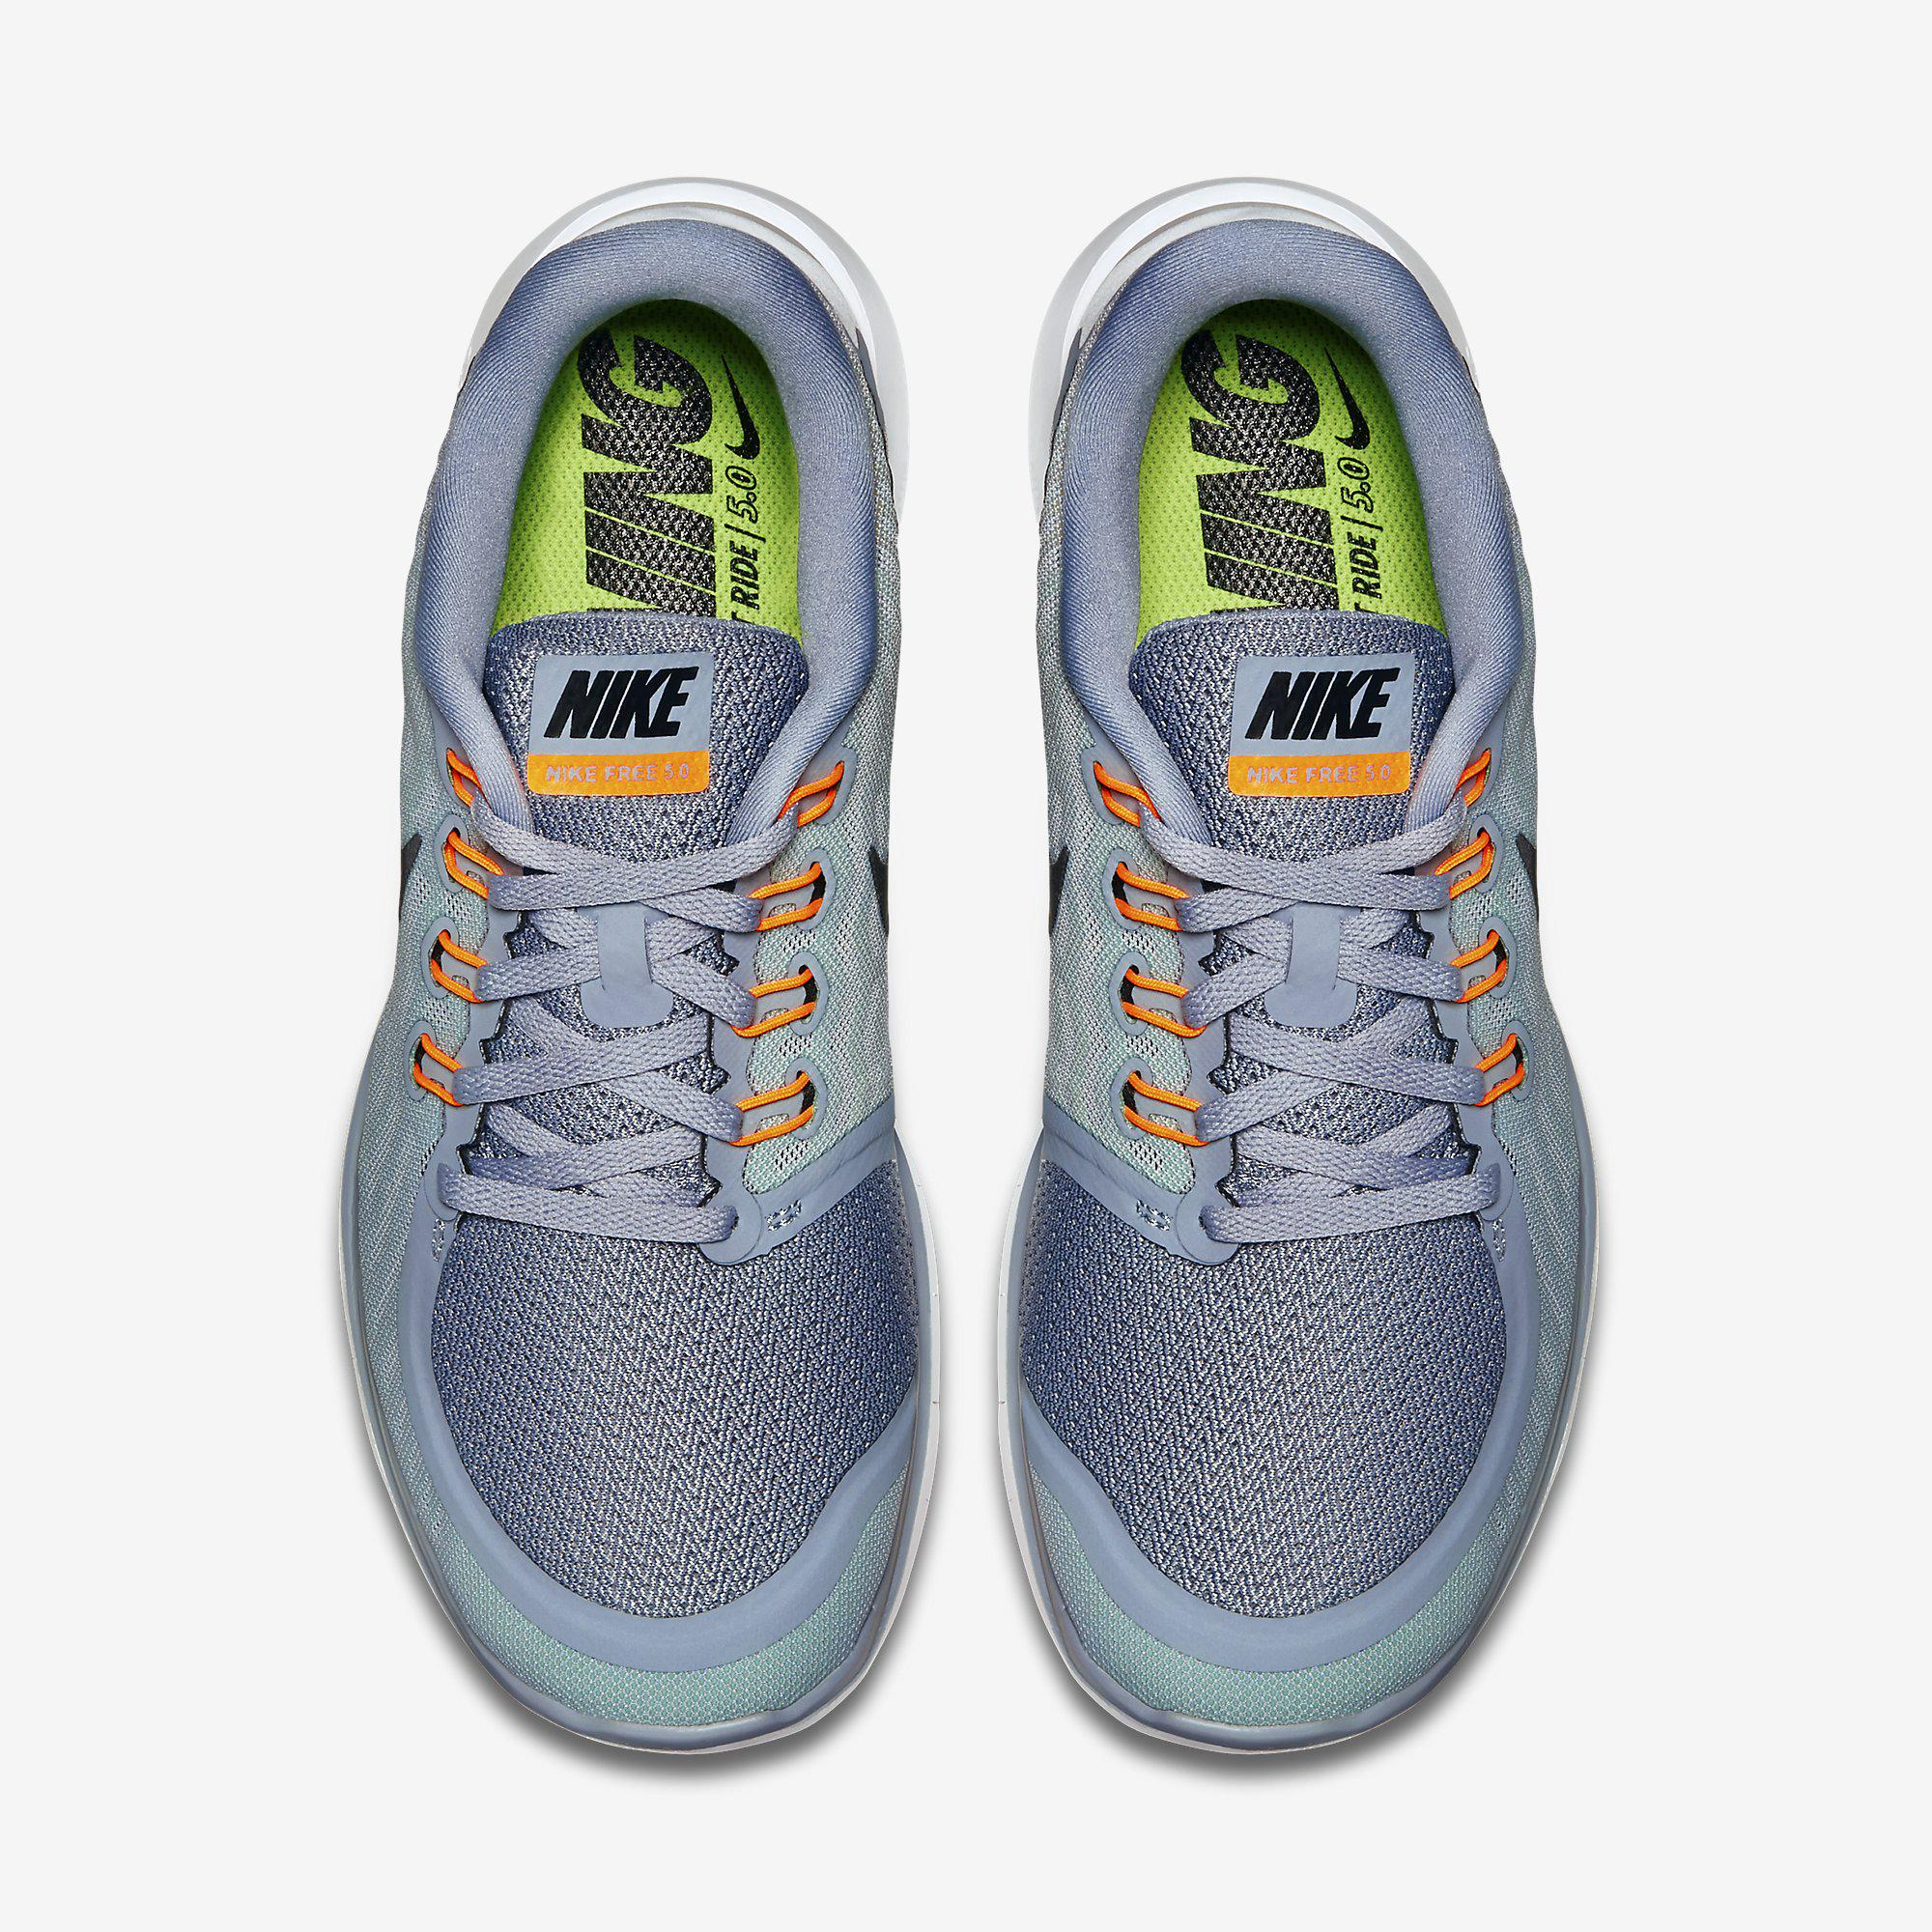 Nike Free 5.0 Dove Grey/Electric Green/Volt/Black